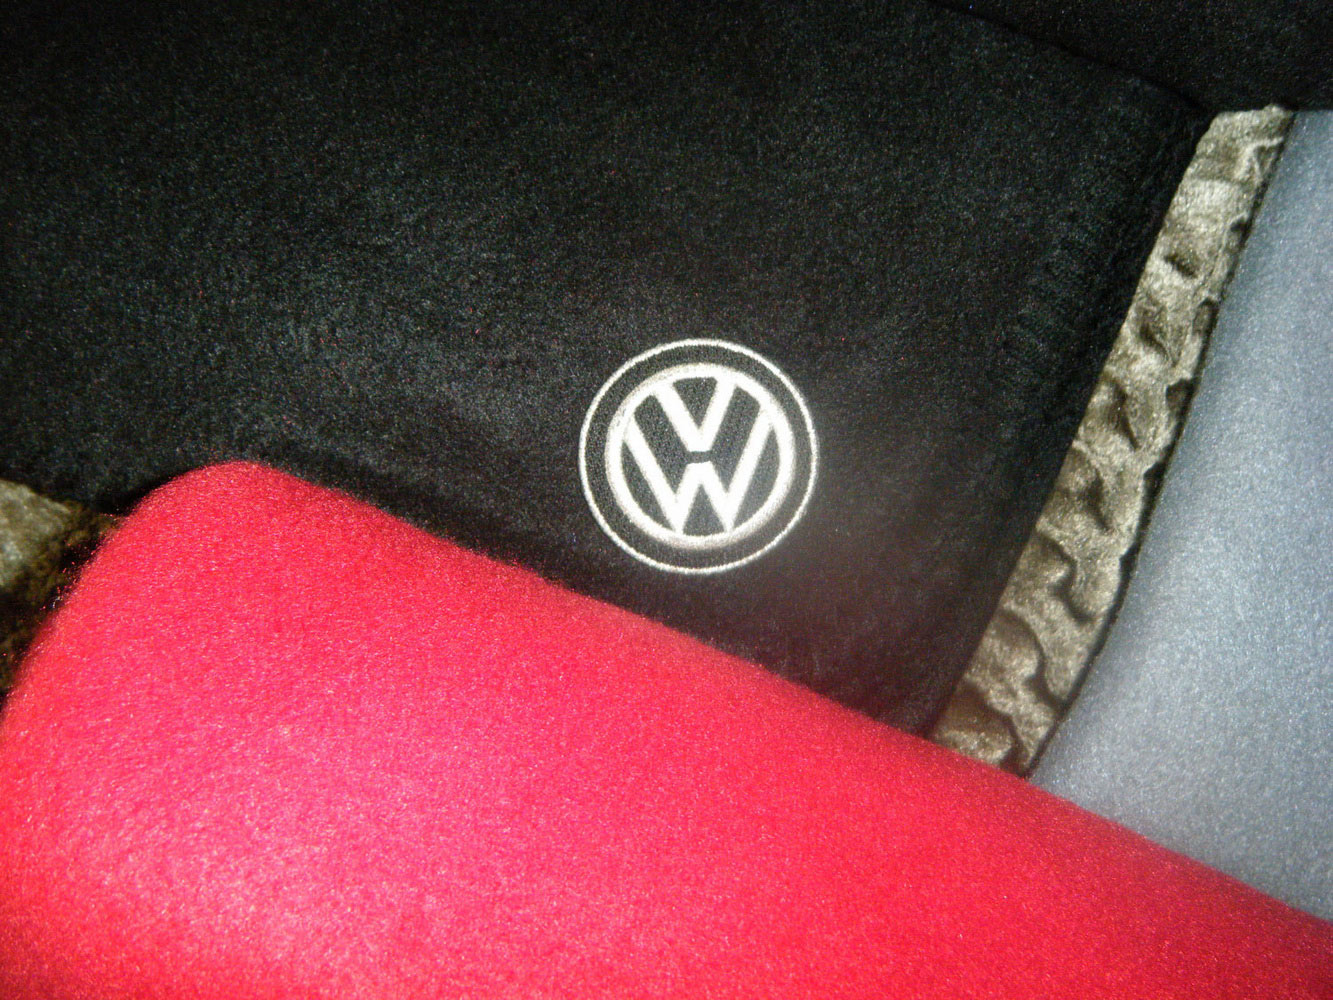 Volkswagen embroidered logo on blanket